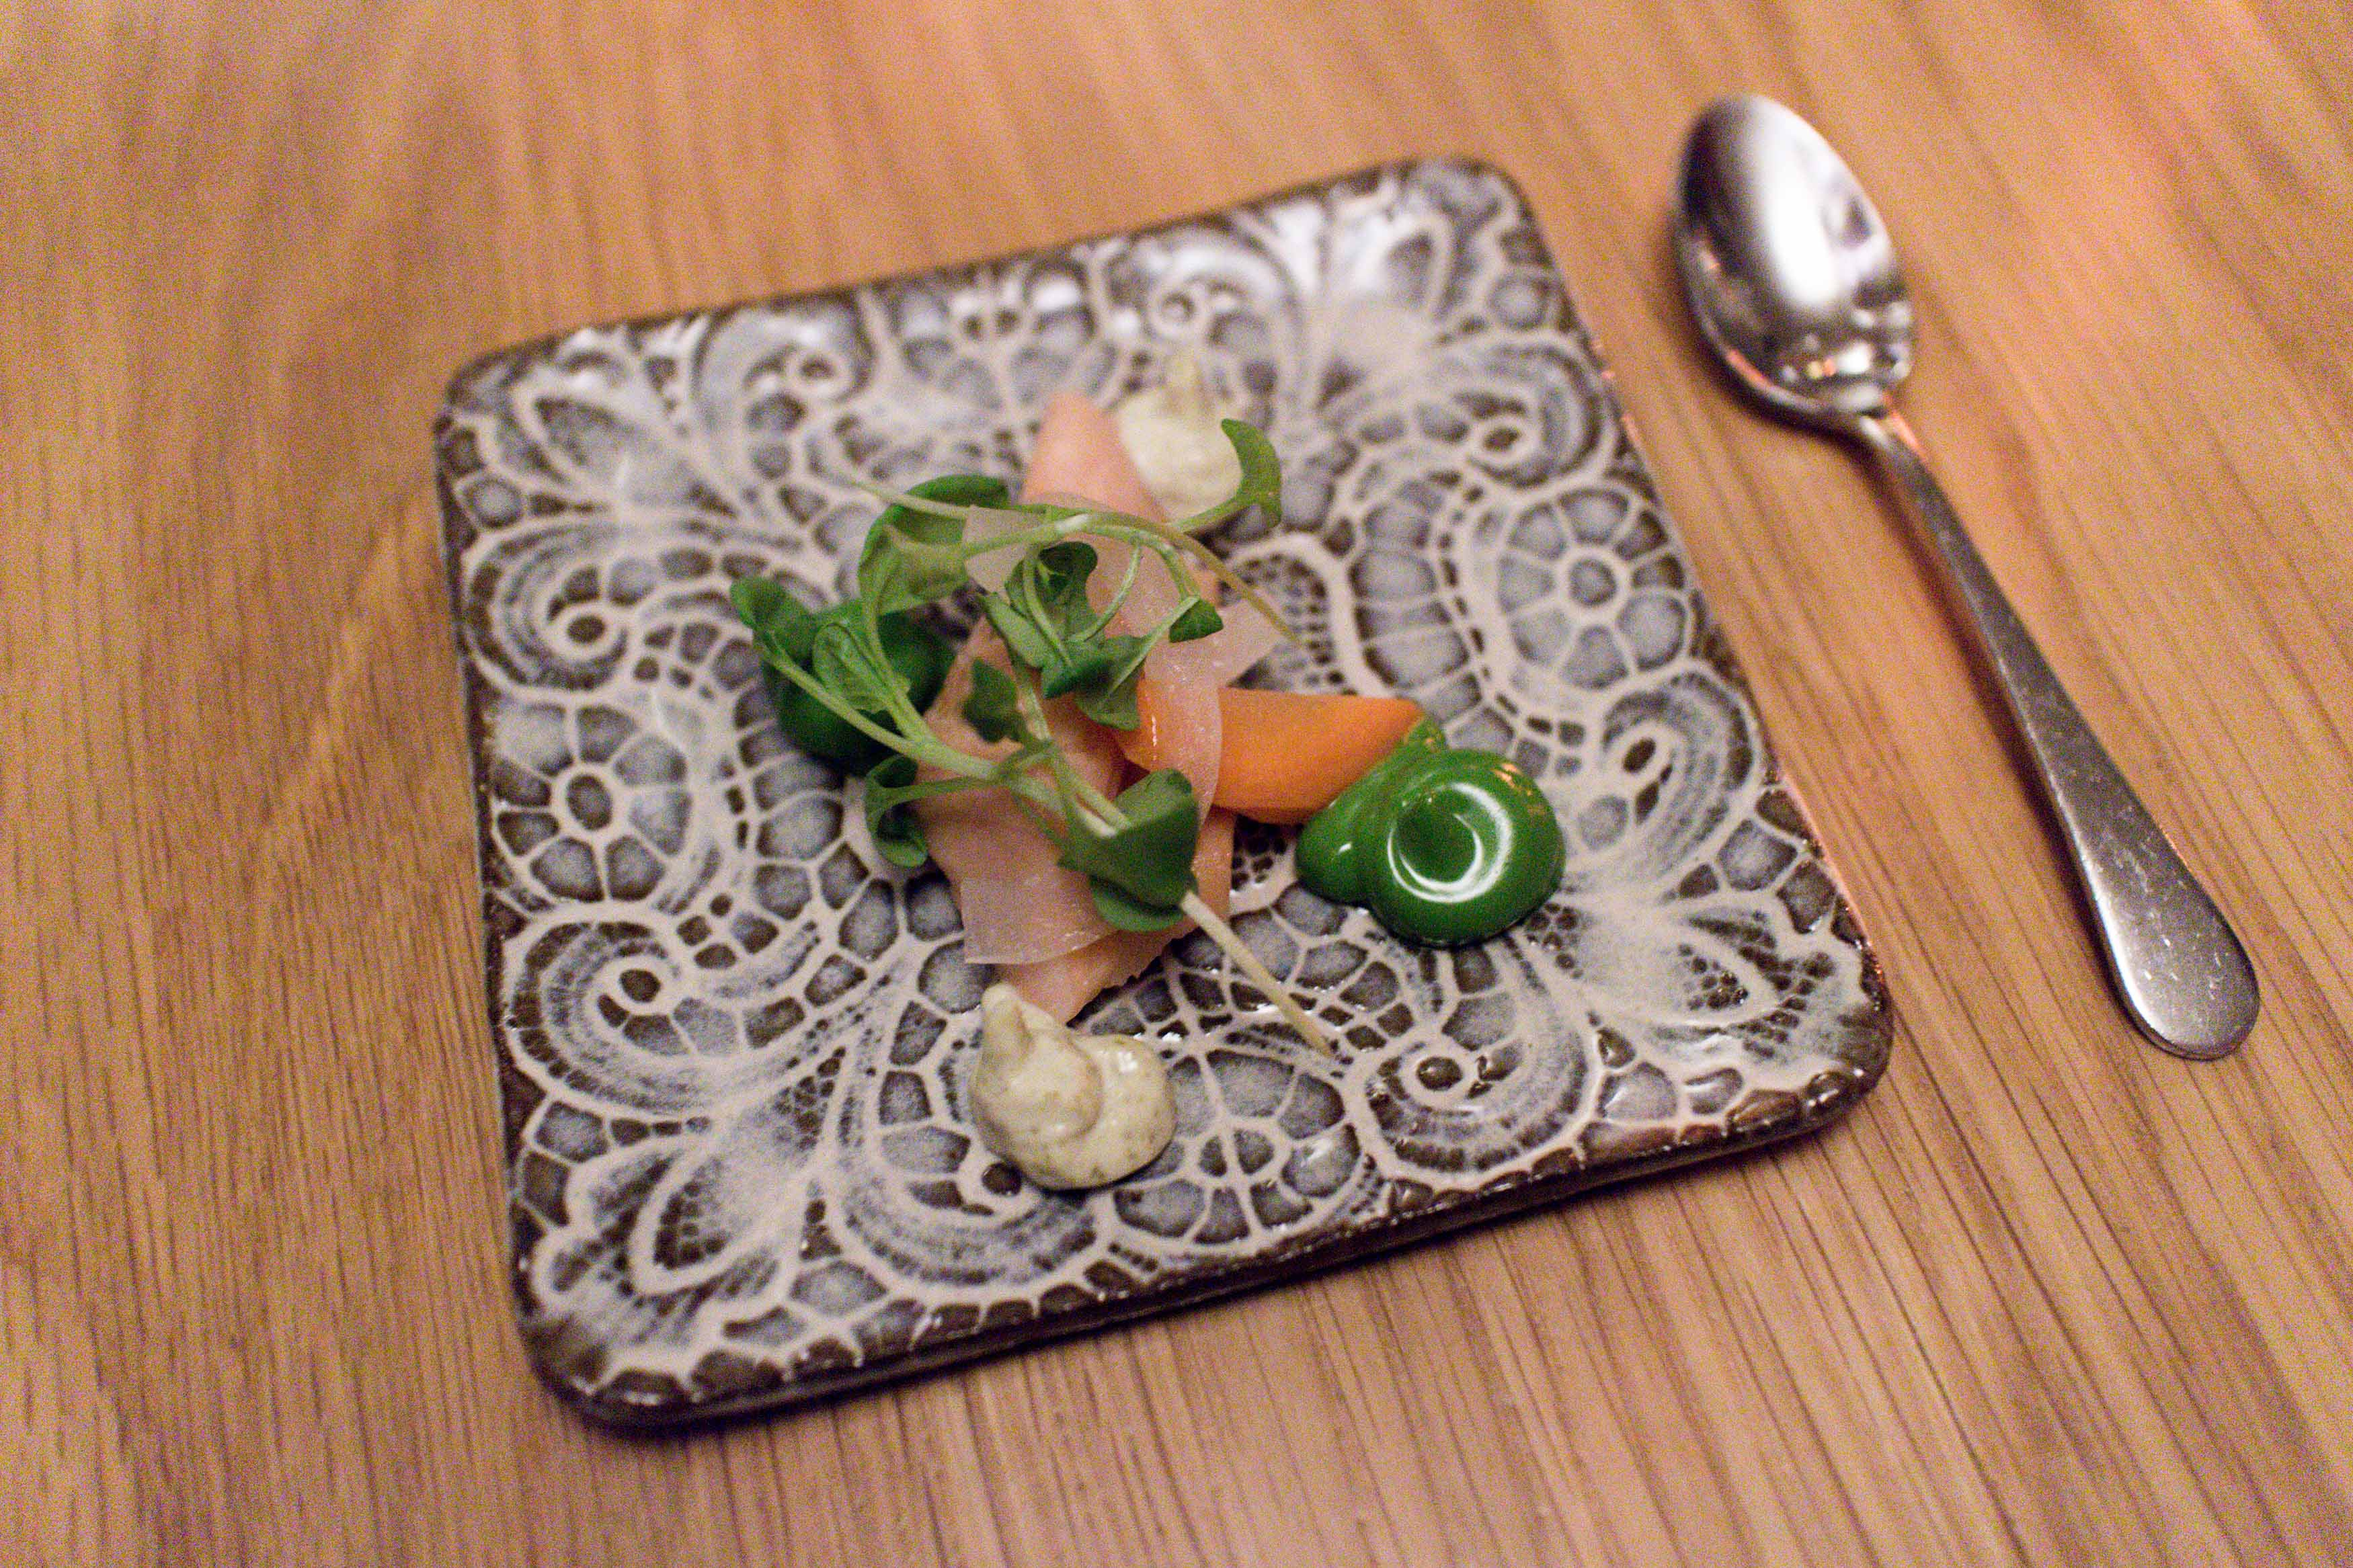 IHEARTALICE.DE – Fashion, Lifestyle, Food & Travel-Blog from Berlin/Germany by Alice M. Huynh: Smör Restaurant in Turku, Finland / Travel Diary